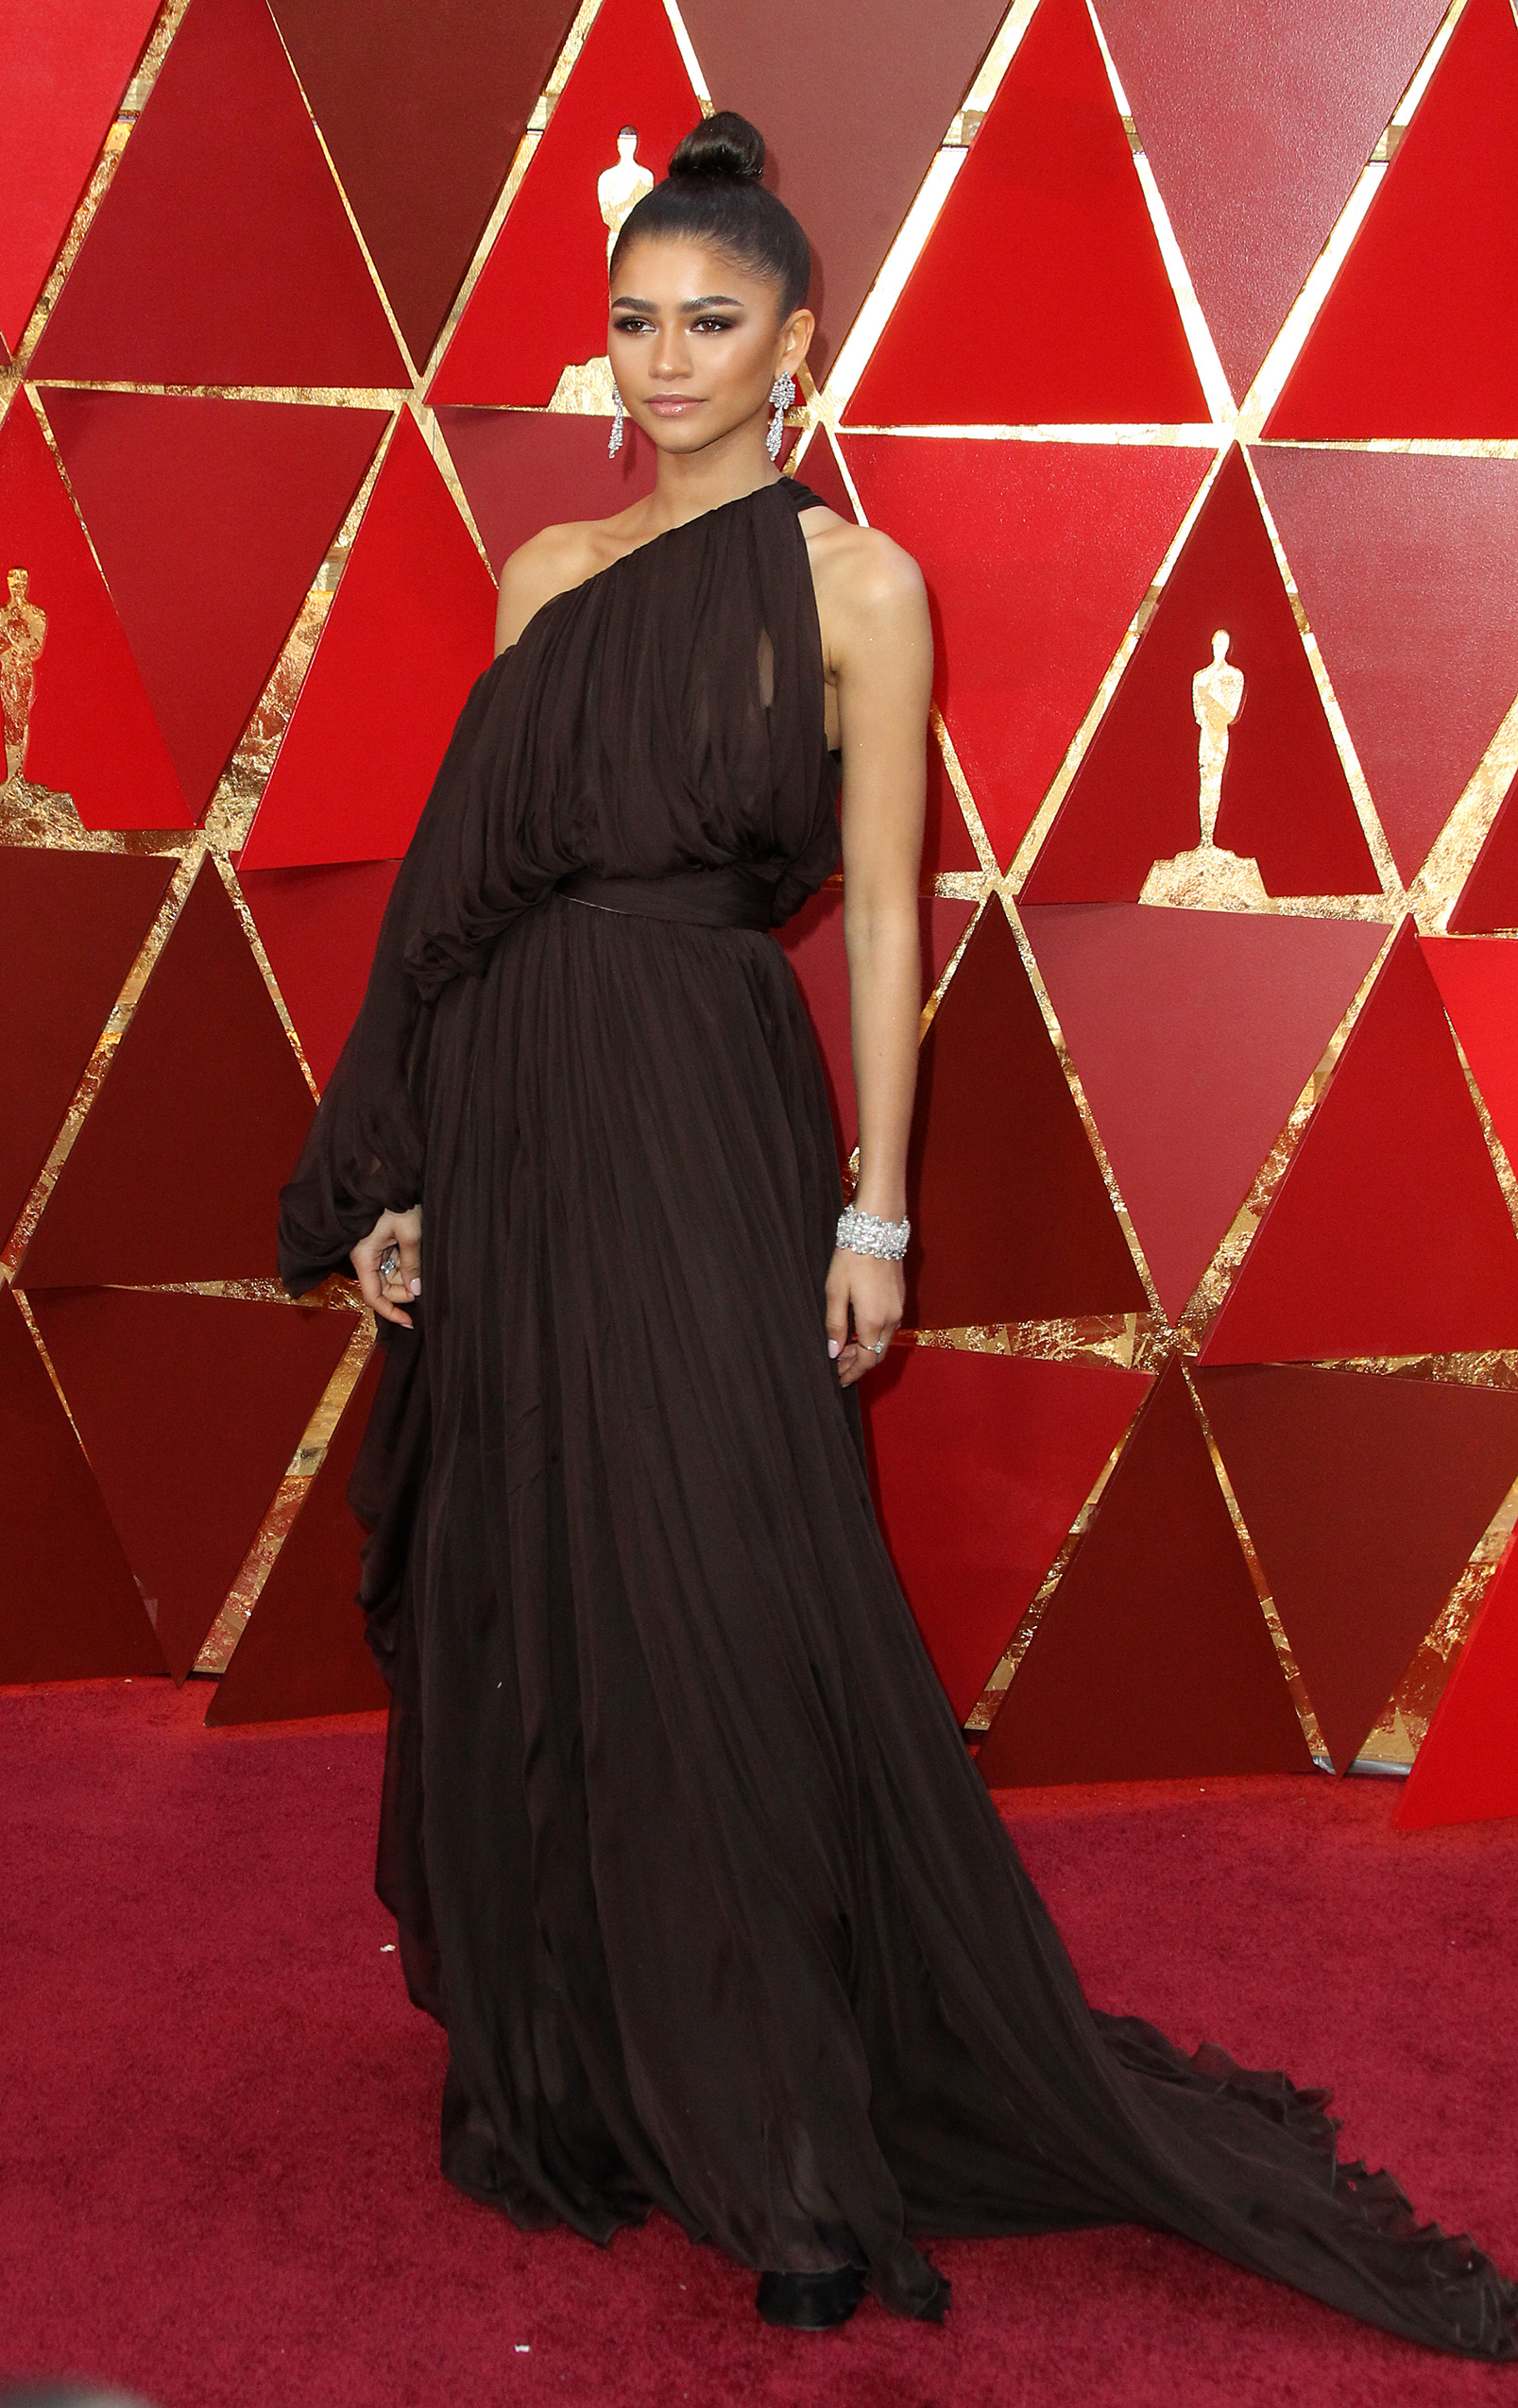 Zendeya        arrives at the 90th Annual Academy Awards (Oscars) held at the Dolby Theater in Hollywood, California. (Image: Adriana M. Barraza/WENN.com)<p></p>